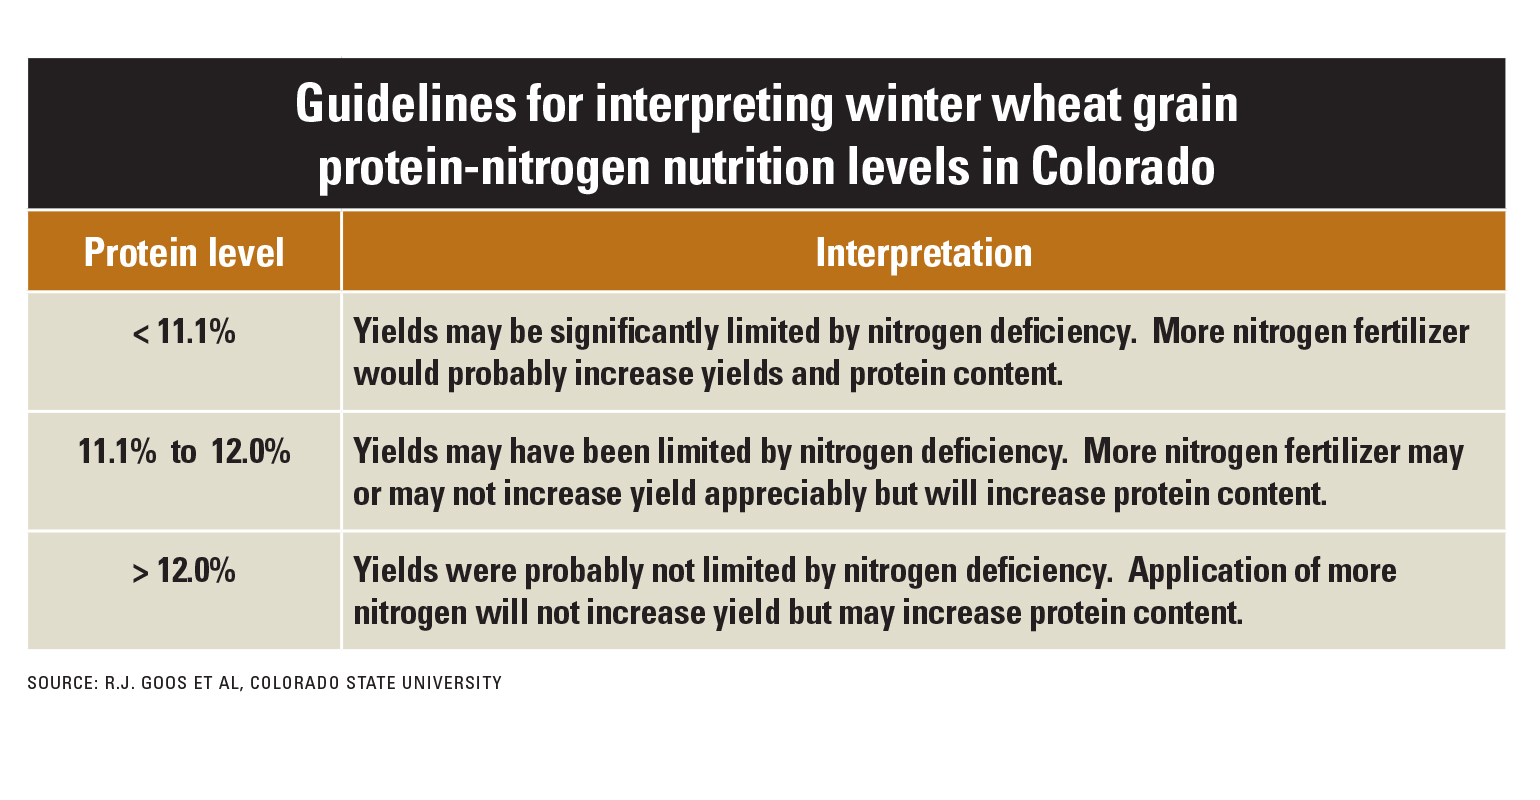 factors that may influence protein production in wheat